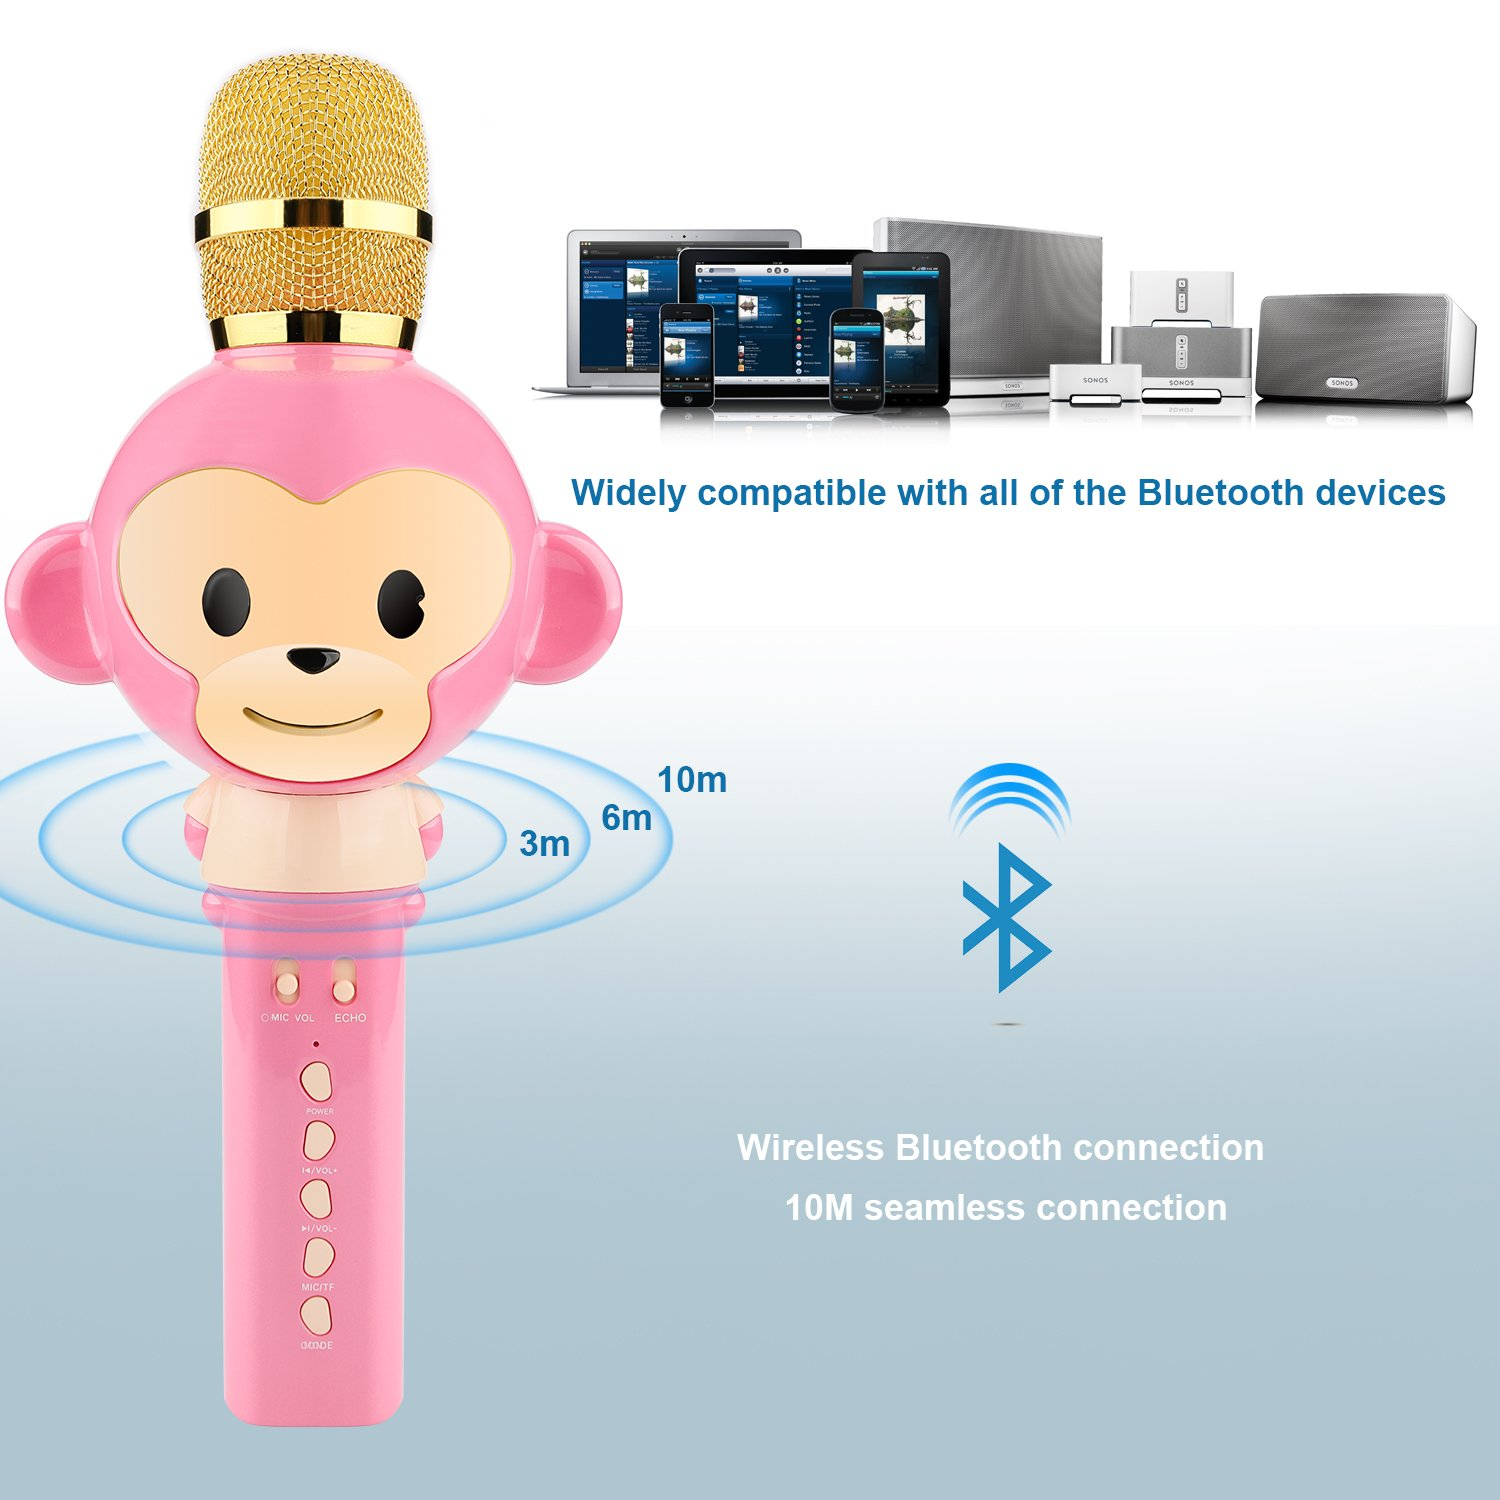 Microphone for Kids Children Karaoke Microphone Bluetooth Wireless Microphone Portable Handheld Karaoke Machine Toys Gifts Singing Recording Home KTV Party iPhone Android PC Smartphone (Pink) by Seelin (Image #4)